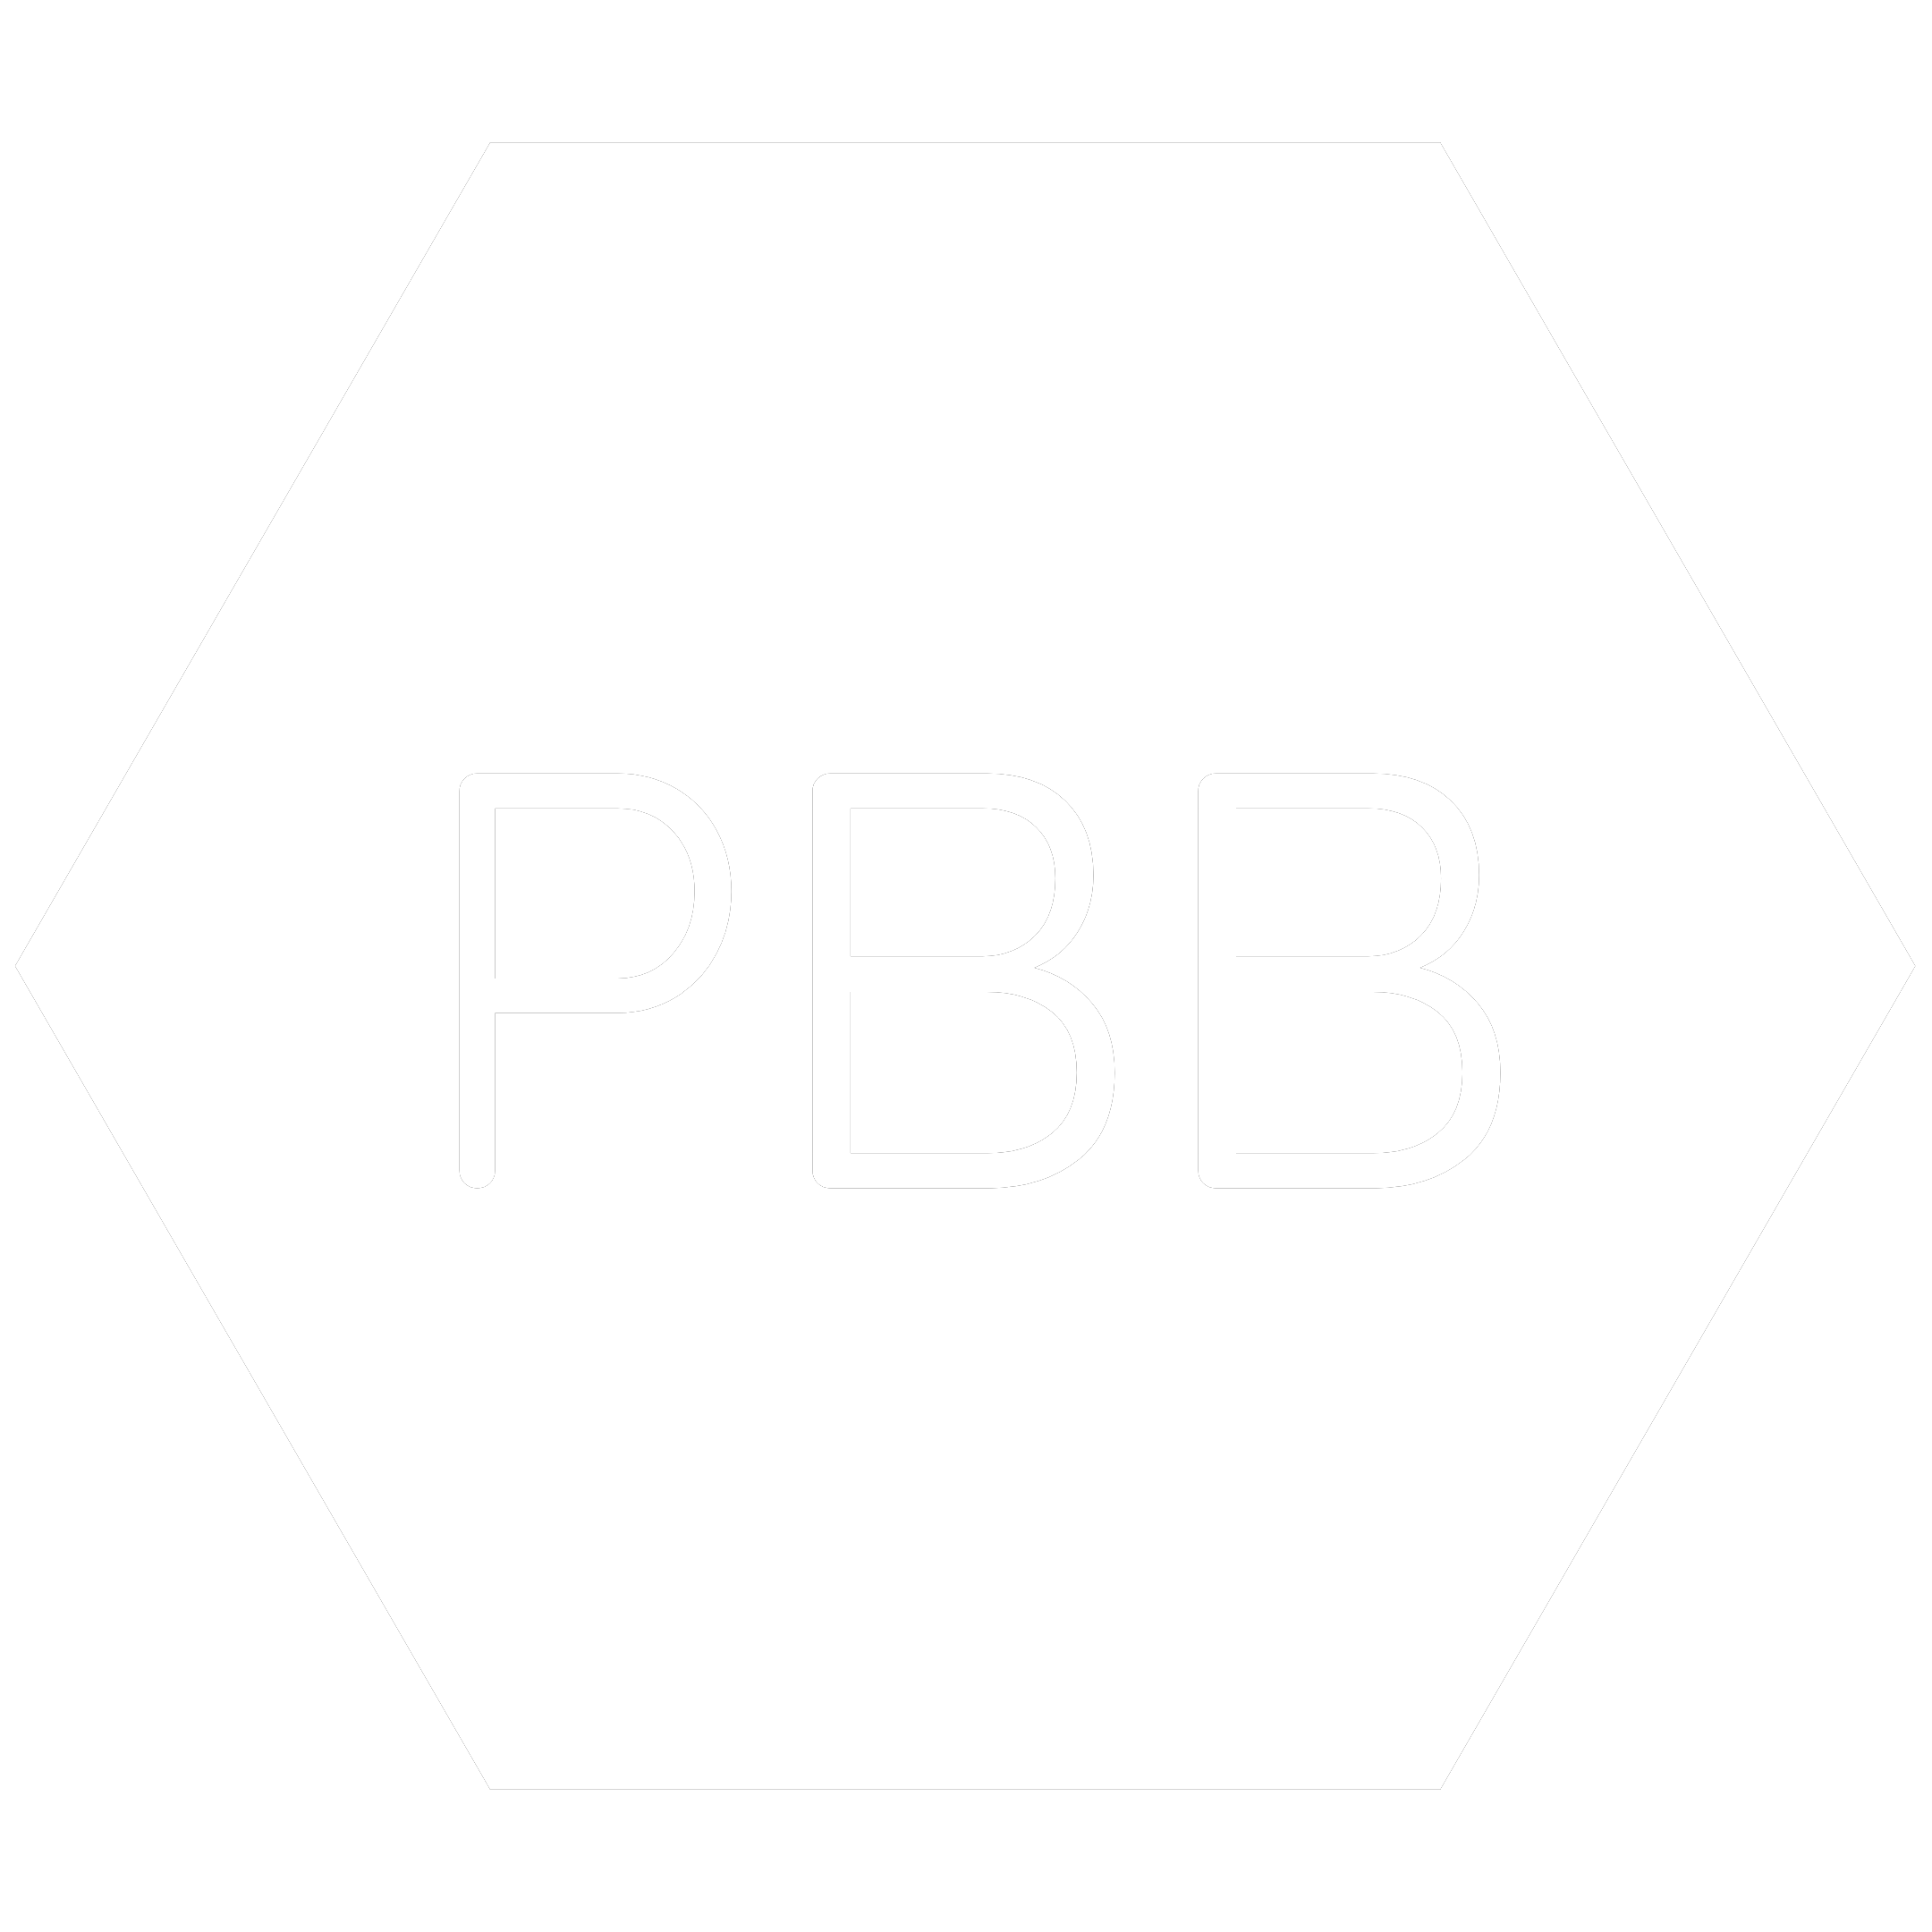 White hexagon icon with the chemical symbol for Polybrominated Biphenyls which is a banned RoHS substance.